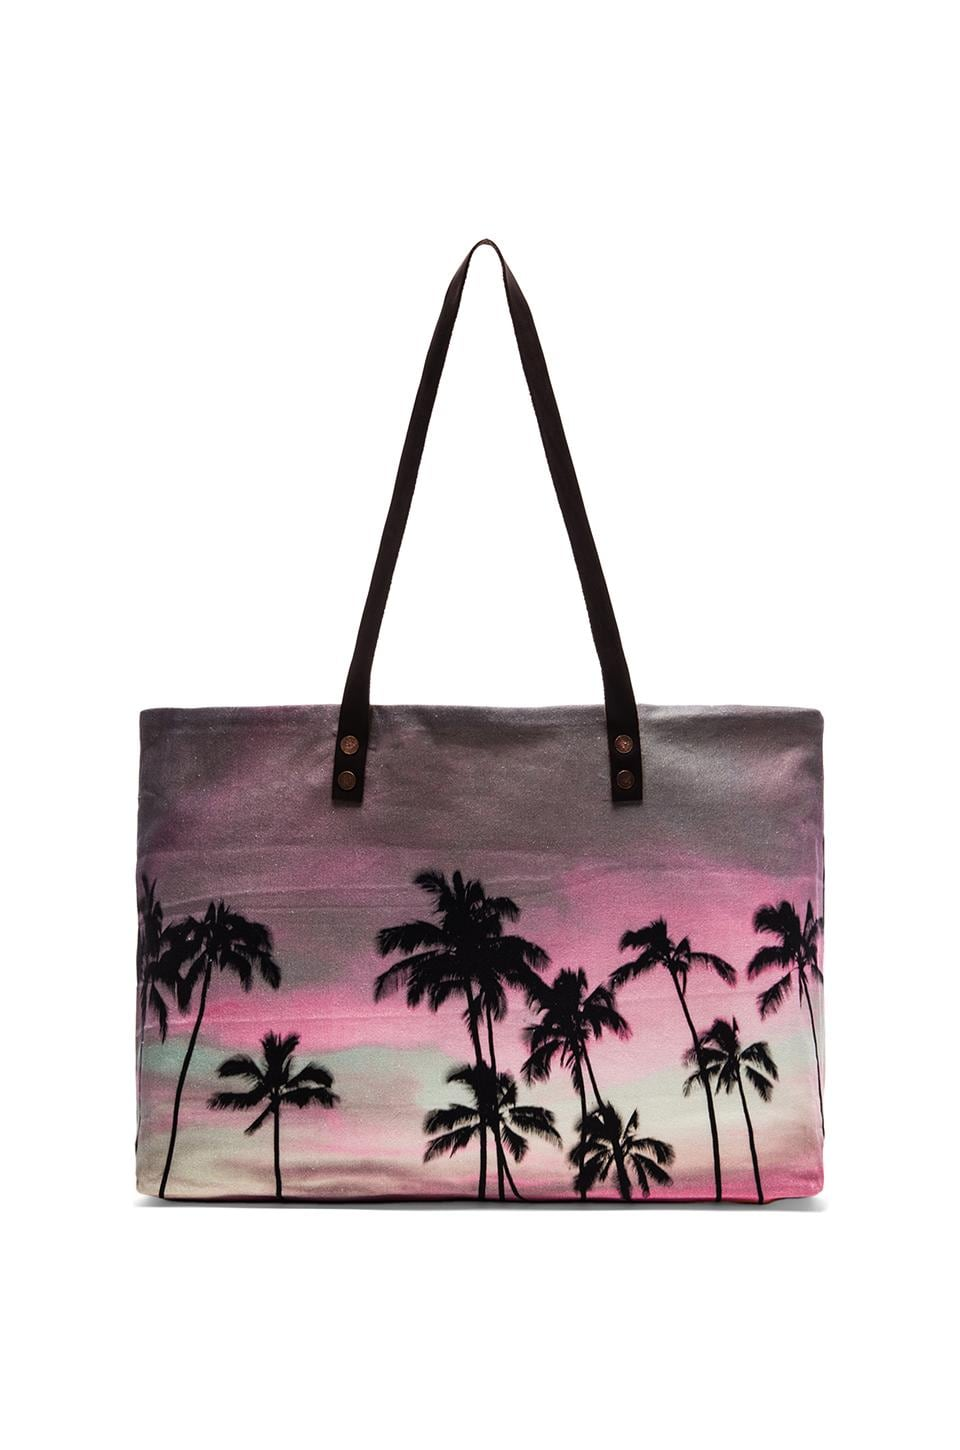 Samudra Haleiwa Beach Bag in Multi